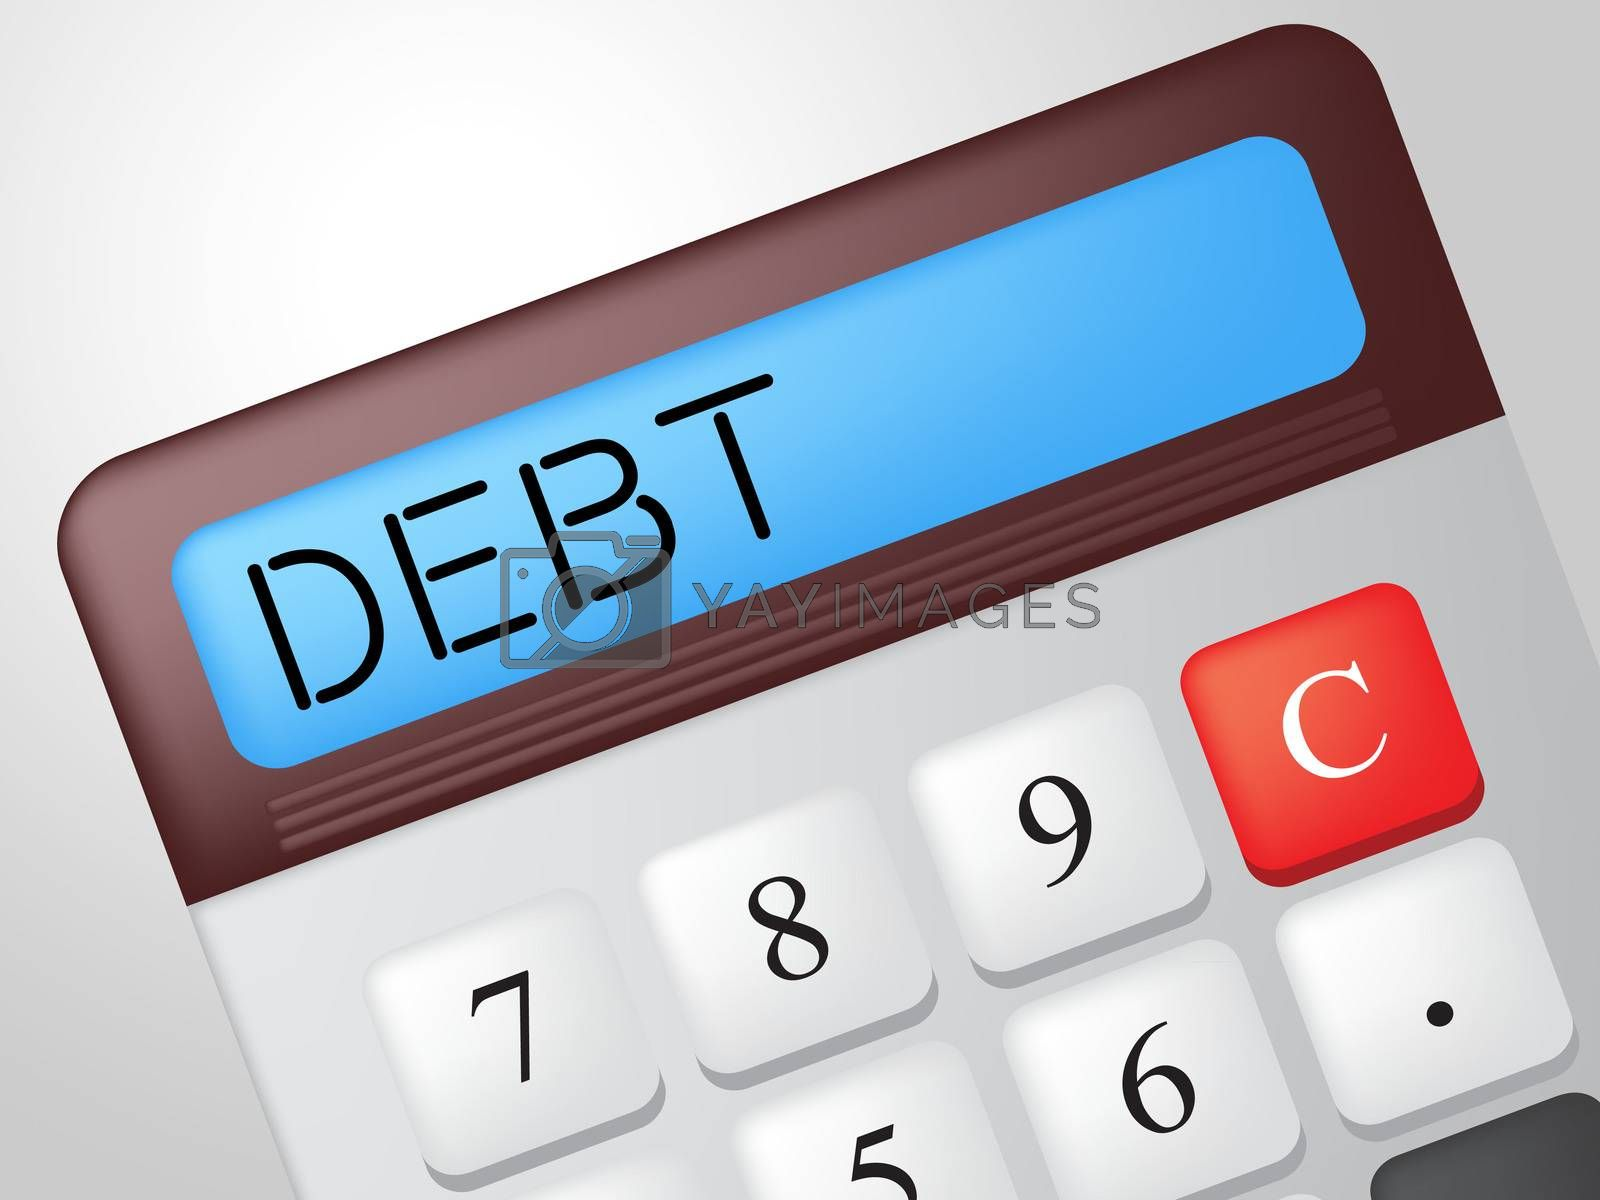 Debt Calculator Indicates Financial Obligation And Calculation by stuartmiles